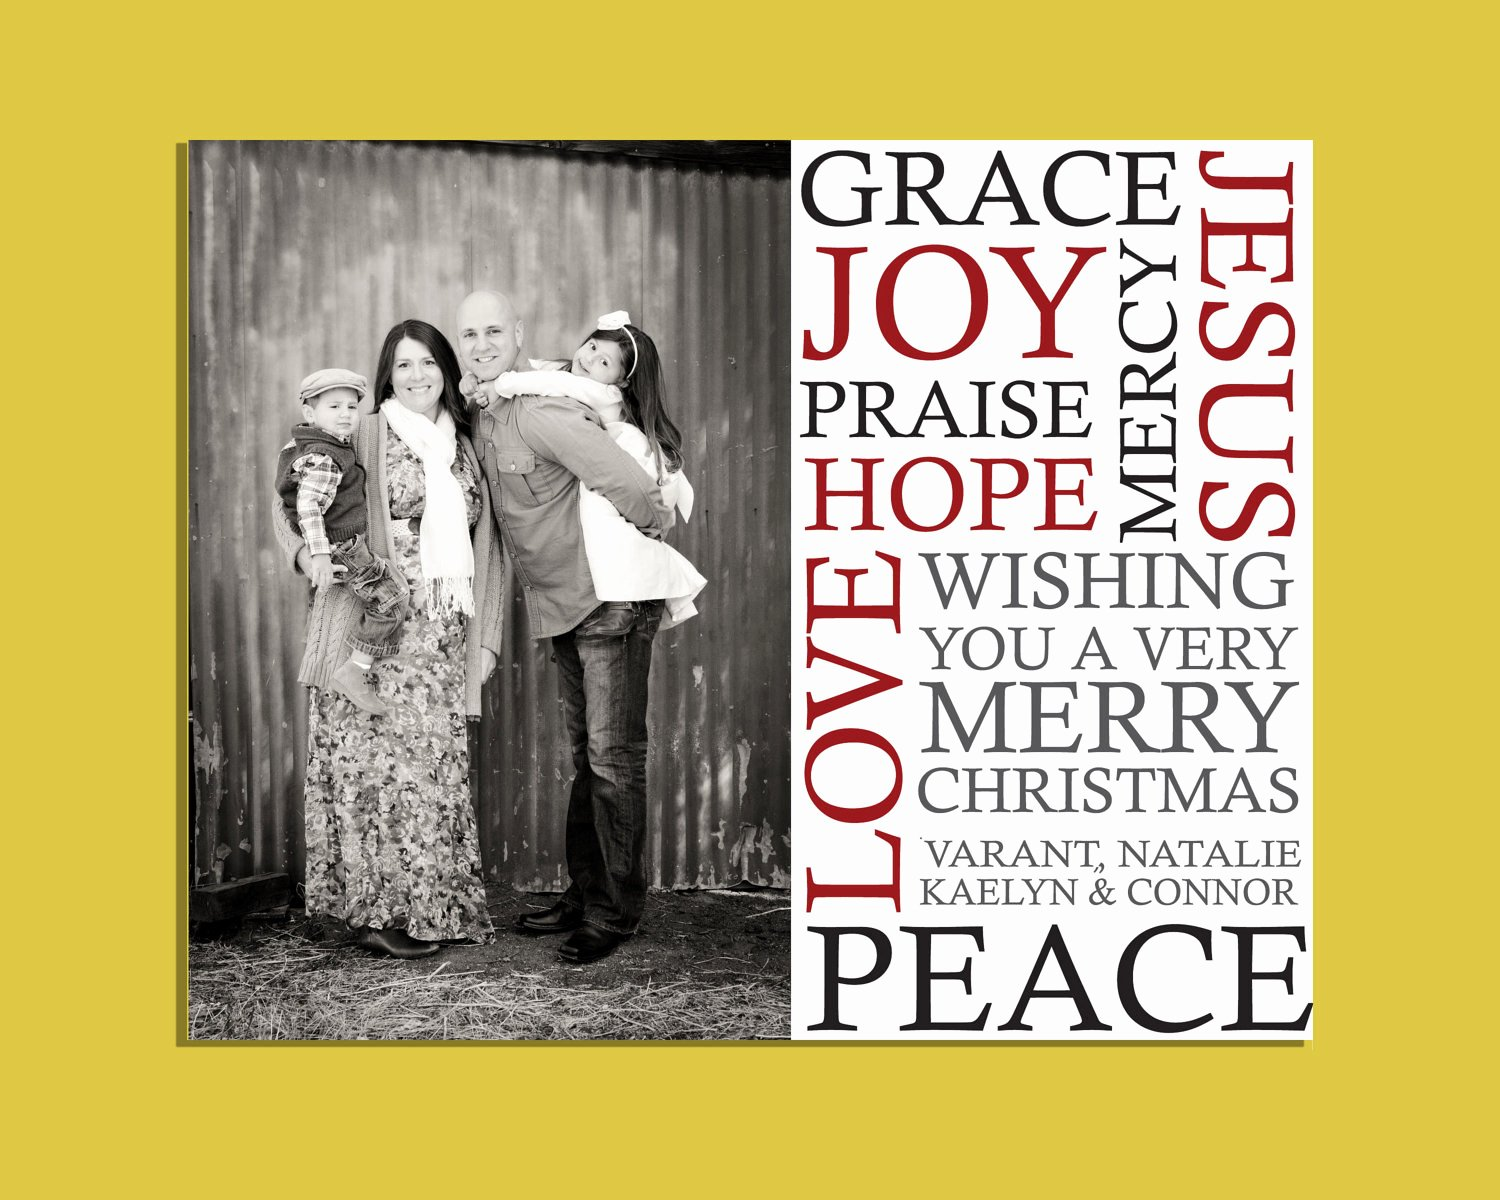 6x7 5 Subway Christmas Card Template Shop Sized for